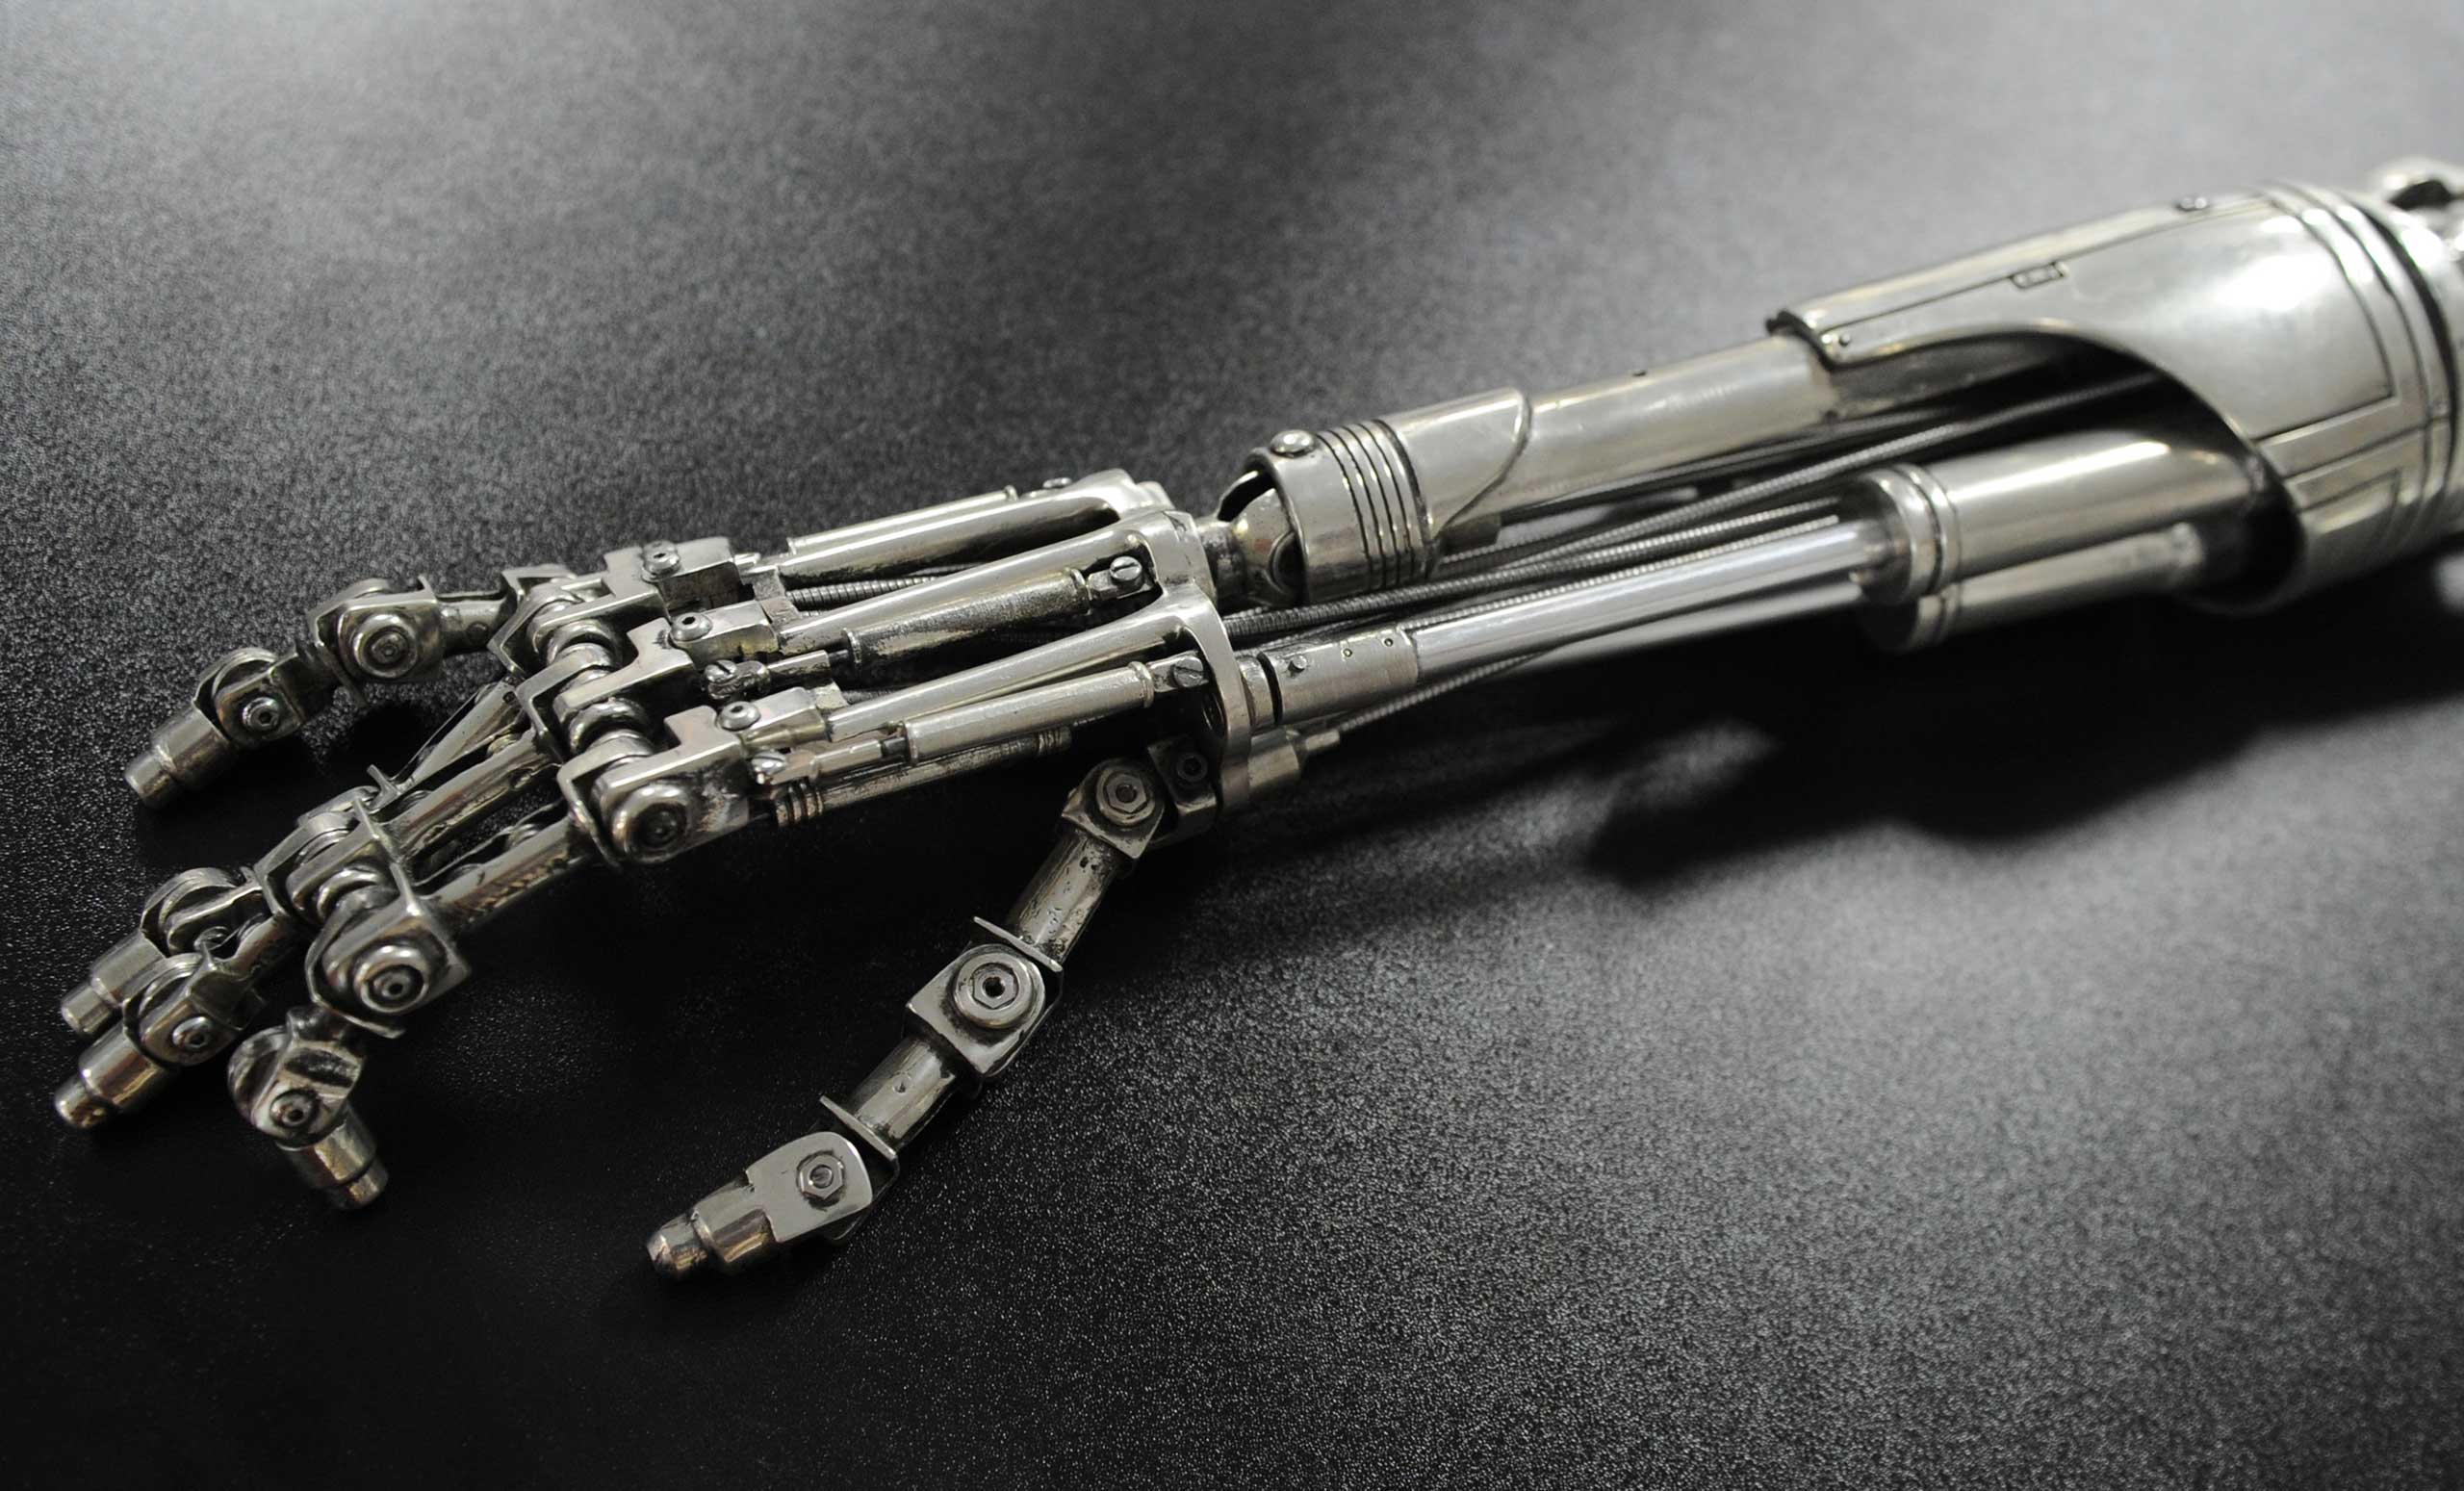 A prop endoskeleton arm from the movie  Terminator 2: Judgement Day.